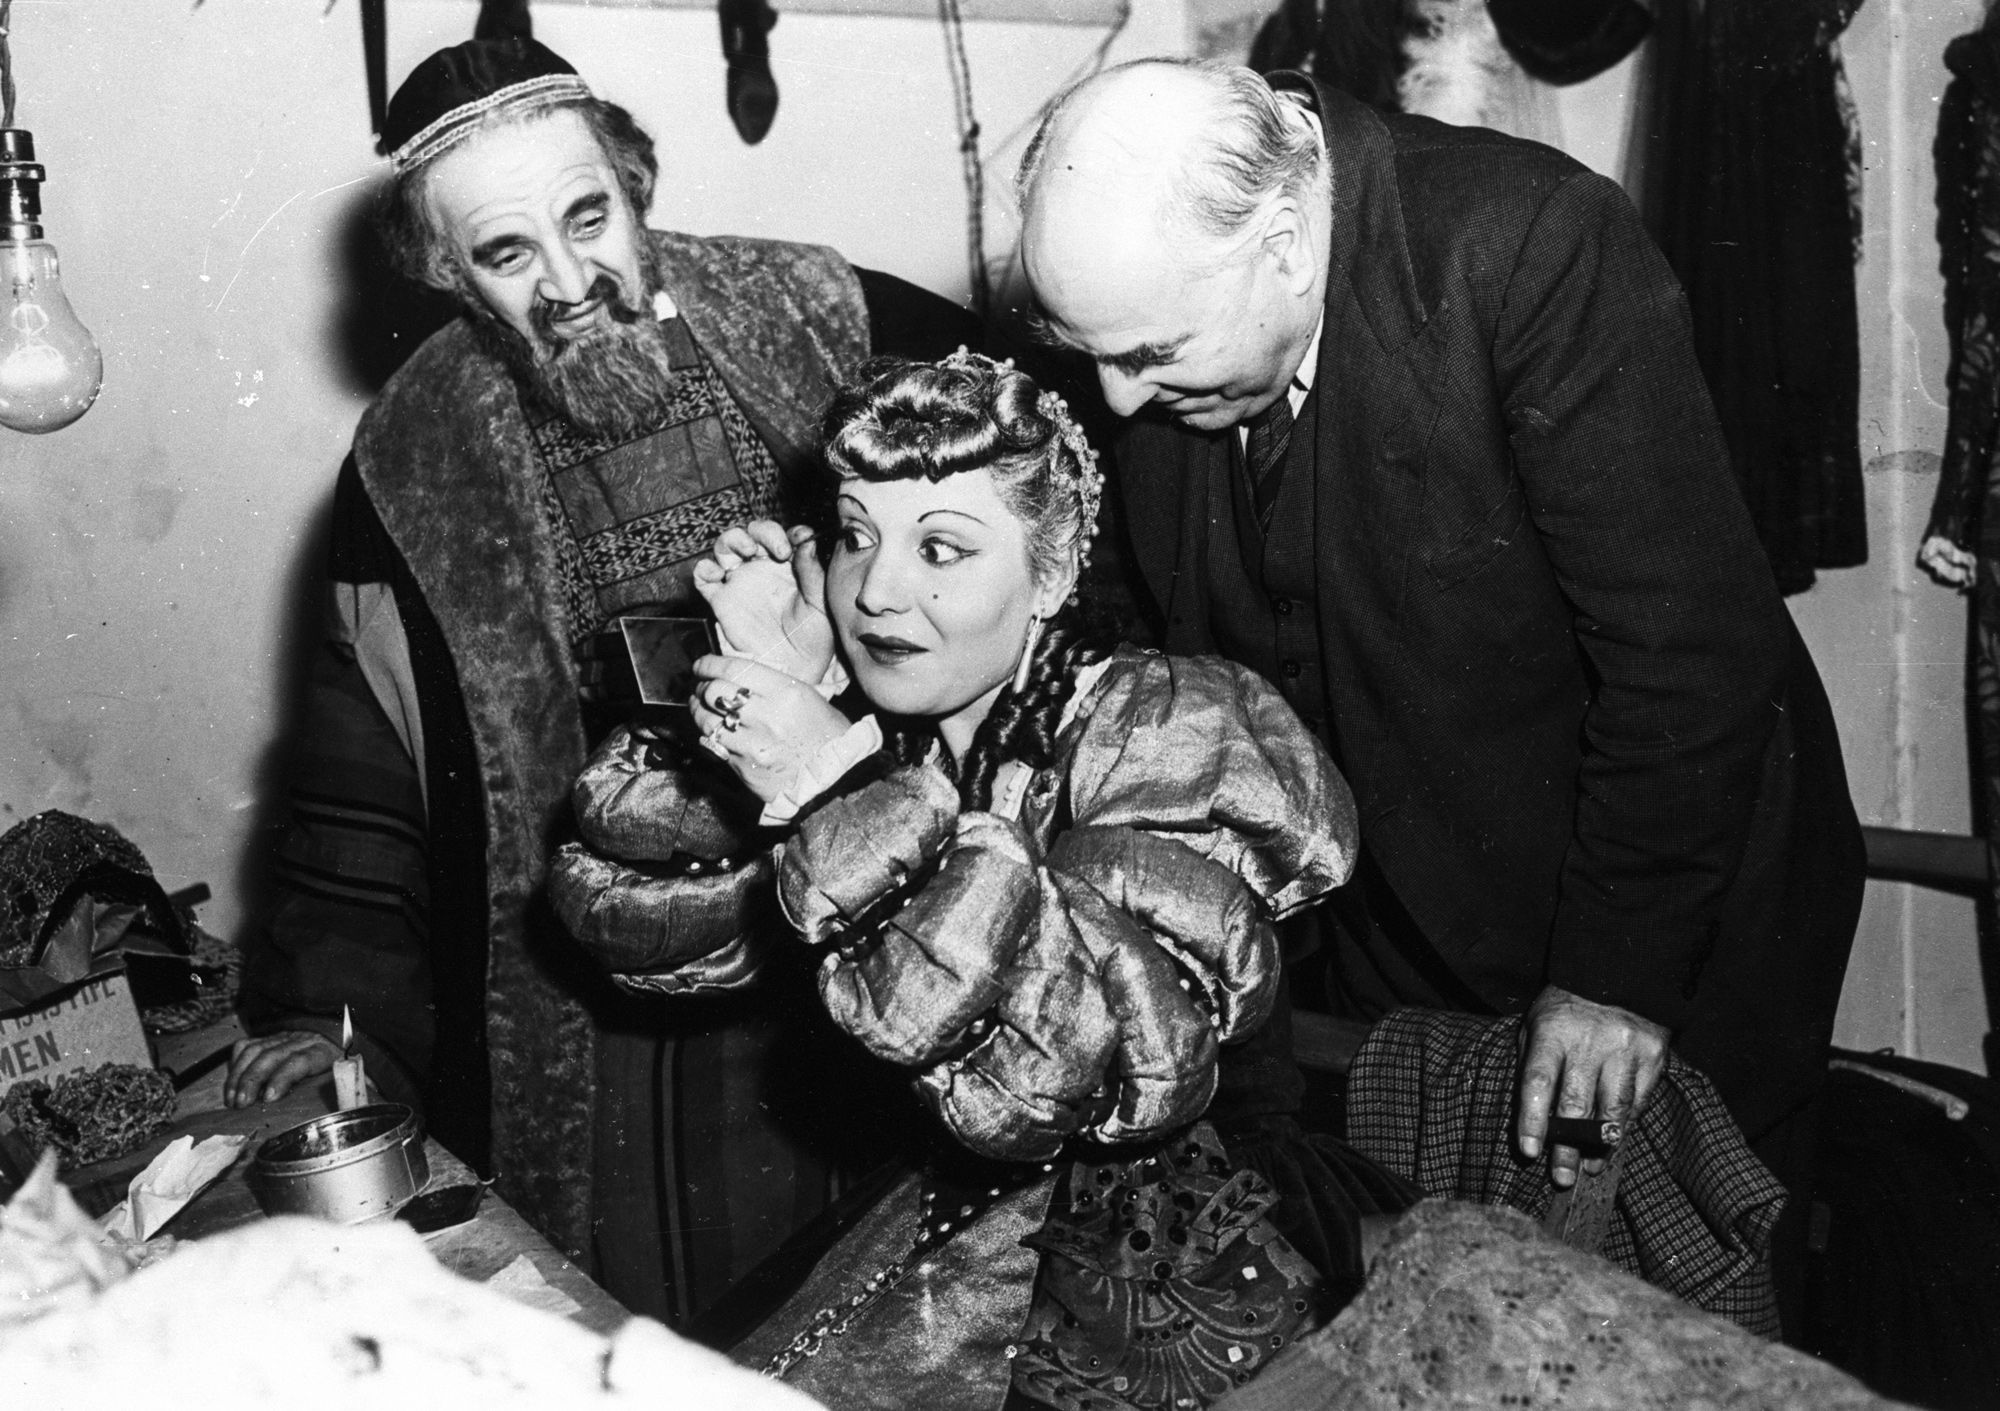 Photographs of Yiddish production of The Merchant of Venice in 1946